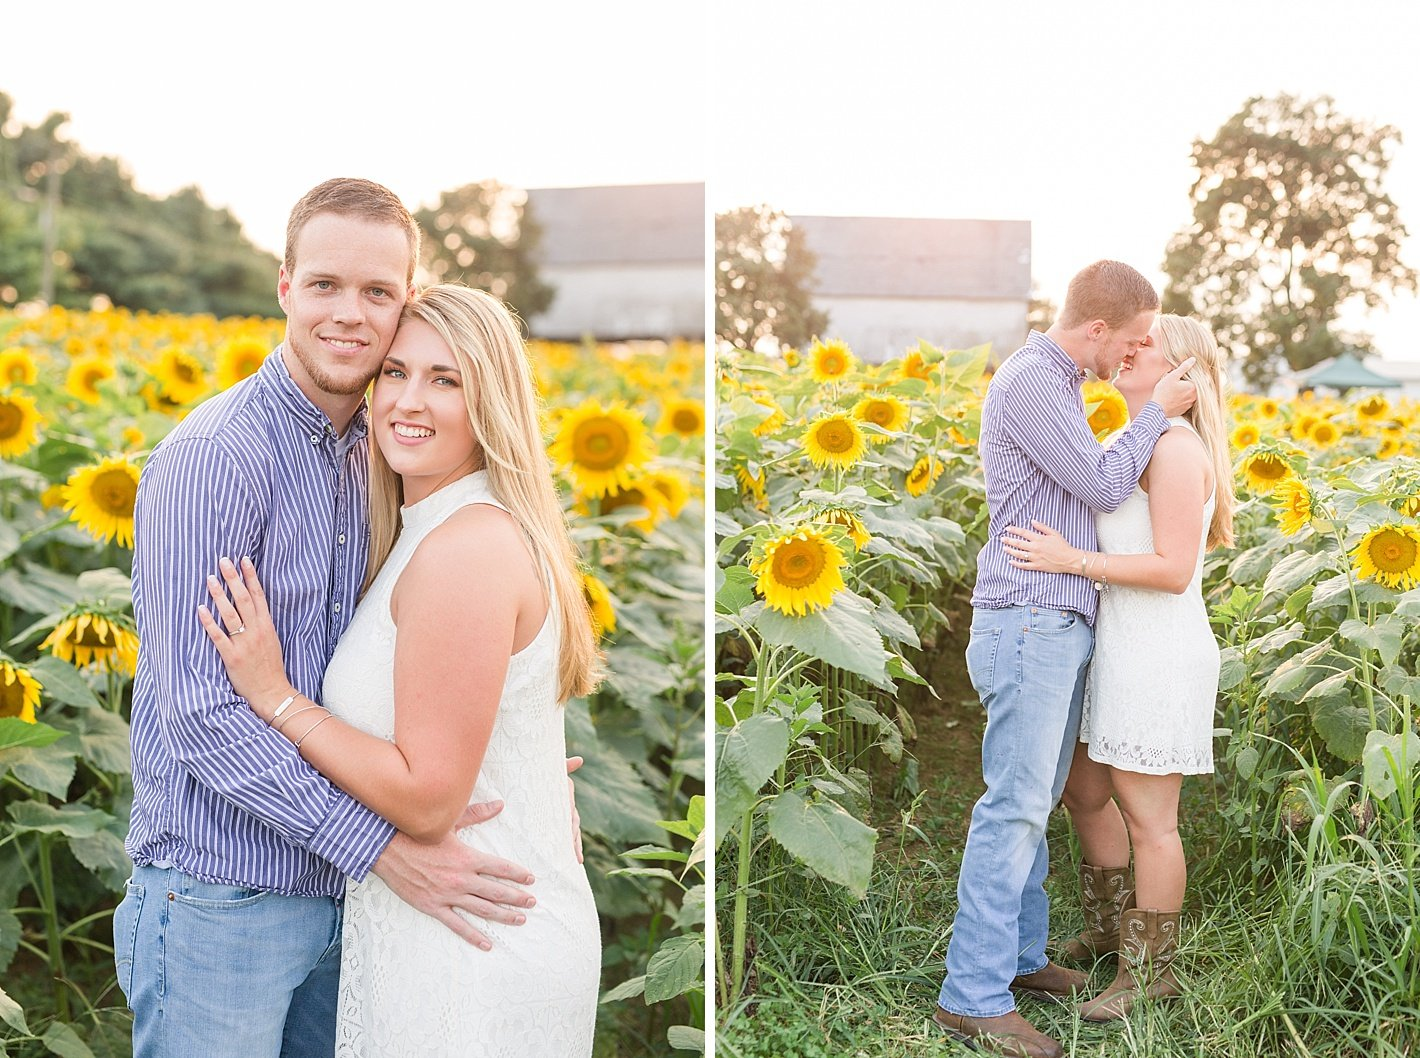 Sunflower Field engagement, Baltimore county sunflower field, pictures in sunflower fields, romantic engagement photography